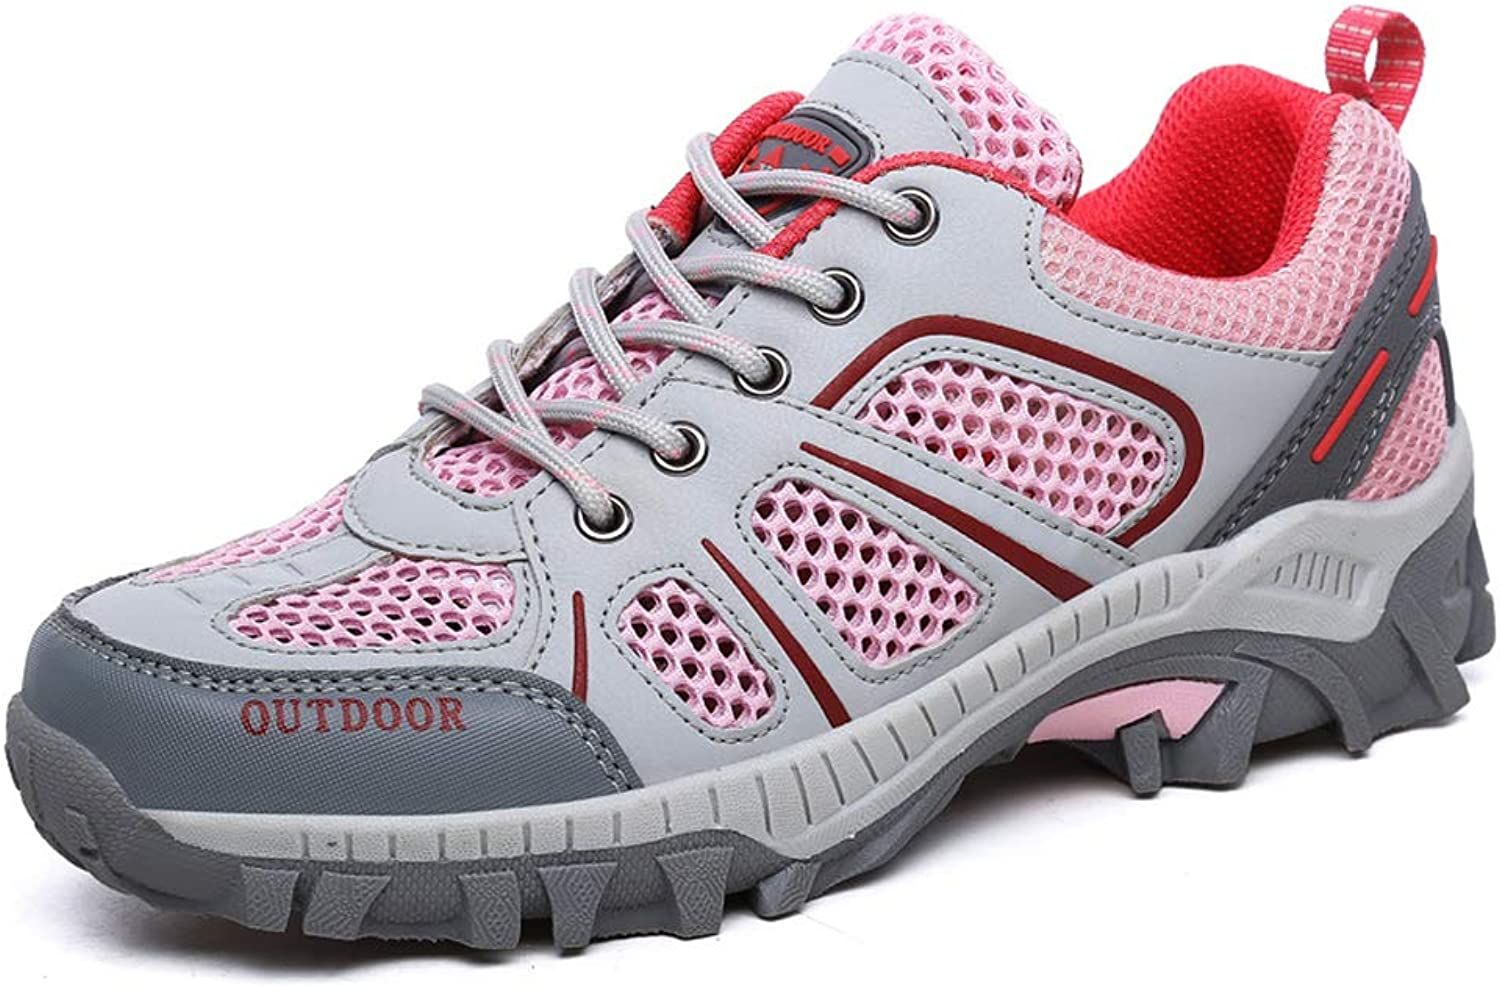 SELCNG Hiking shoes Outdoor mesh Non-Slip wear-Resistant Breathable Cross-Country Walking shoes-Pink-36